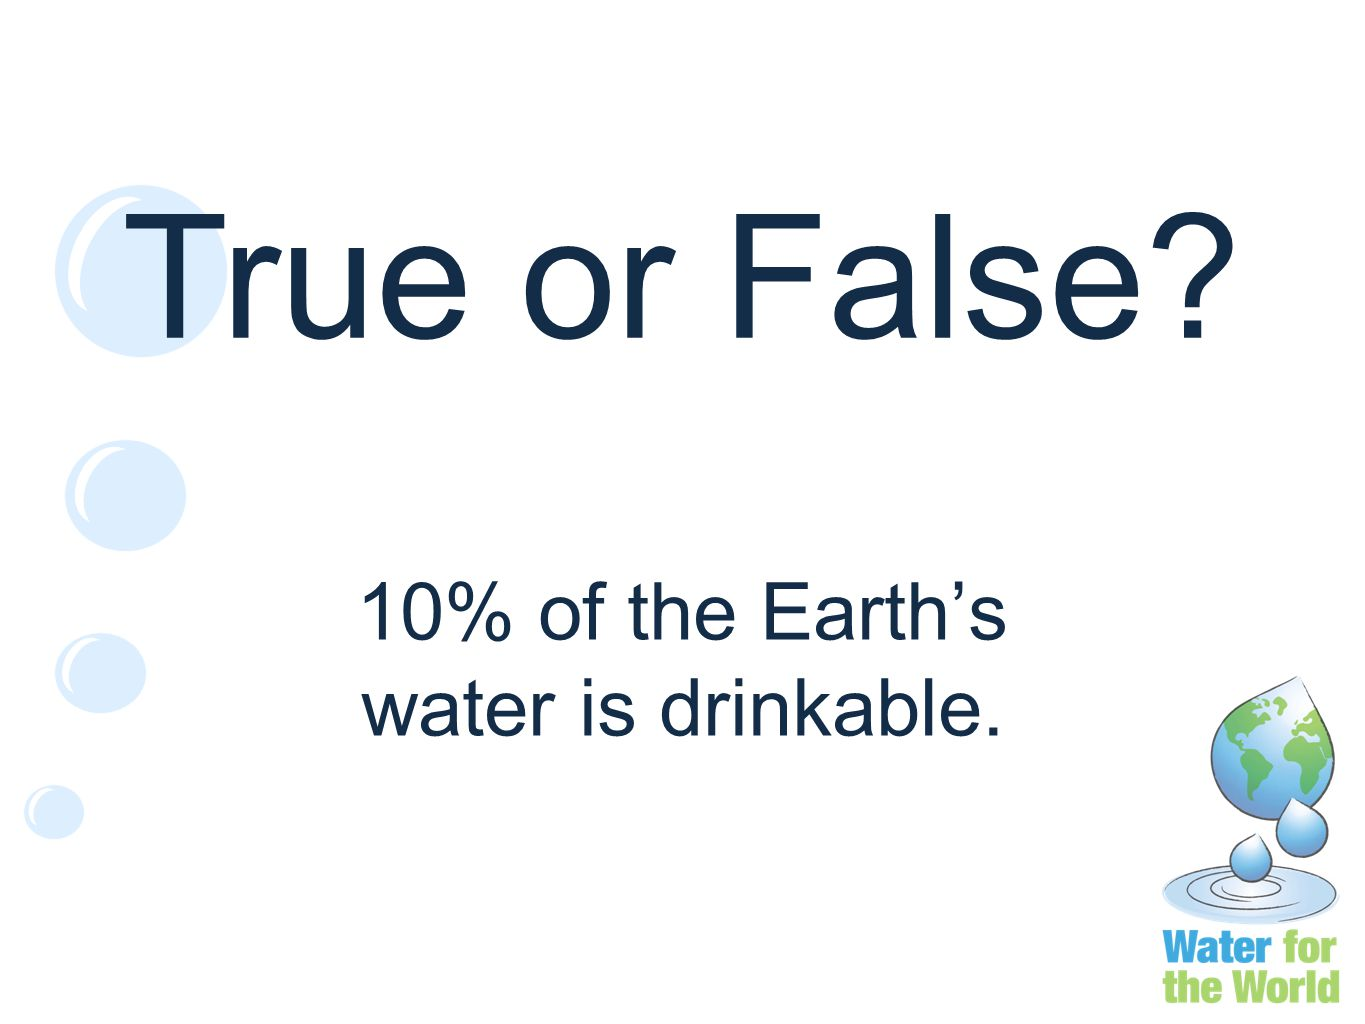 True or False 10% of the Earth's water is drinkable.